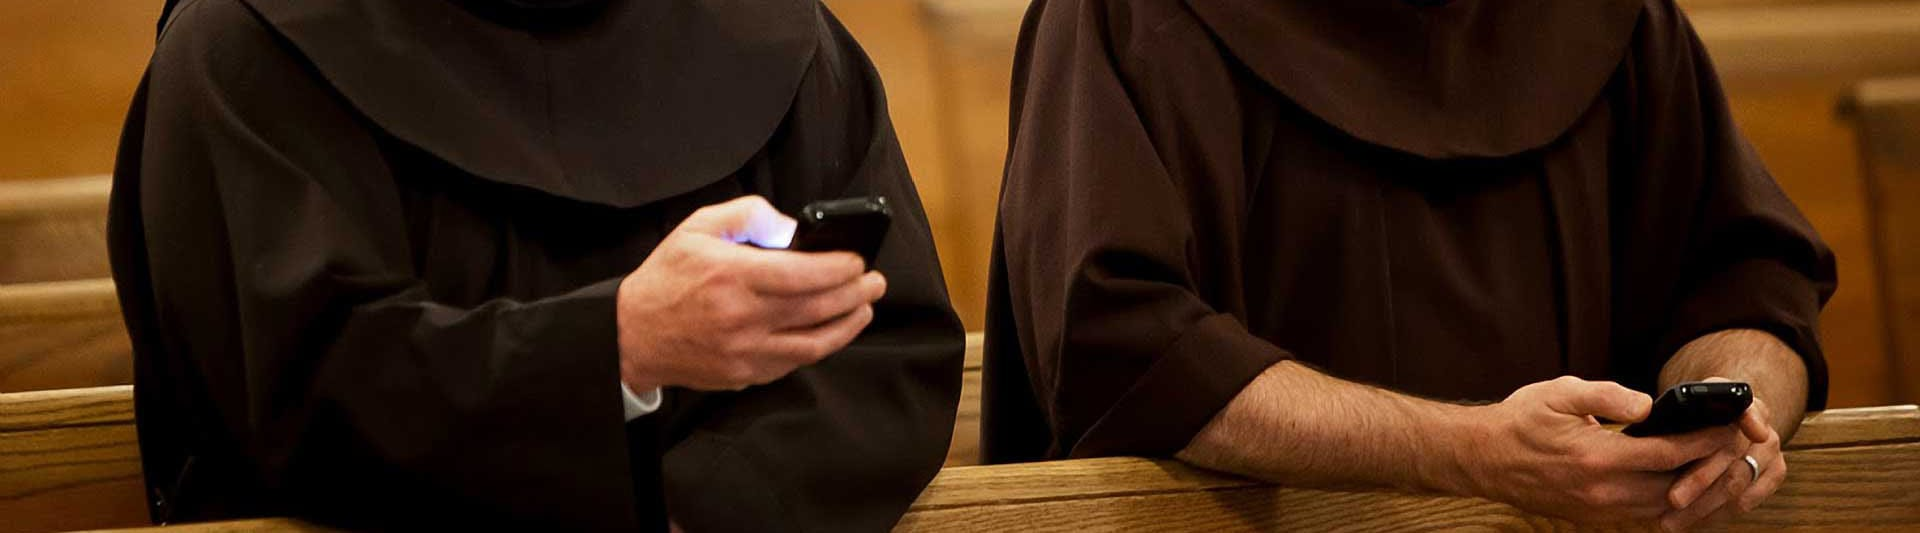 Franciscan friars with smart phones